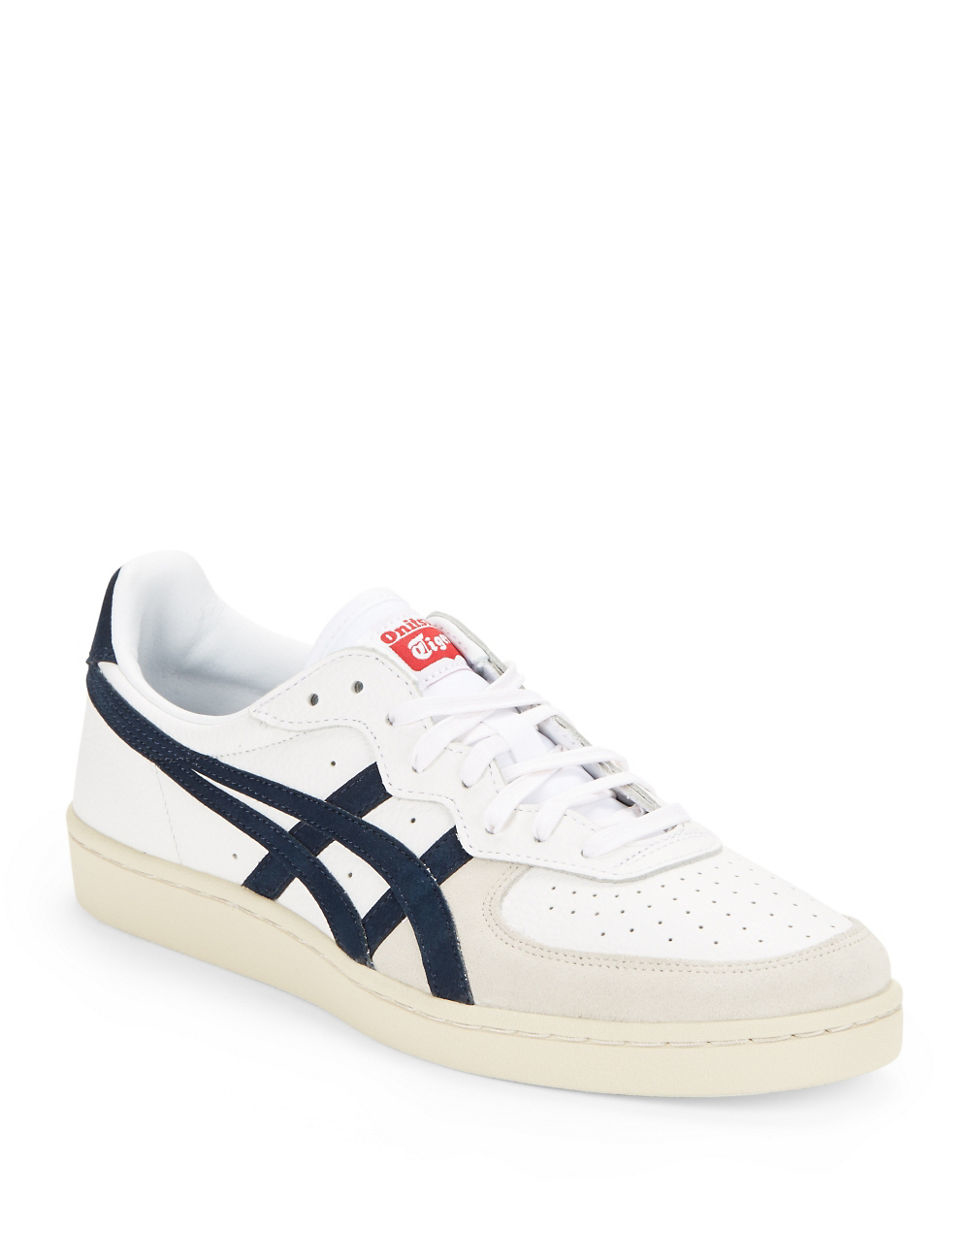 8a85d933f Asics Natural Leather Lace-up Sneakers for men